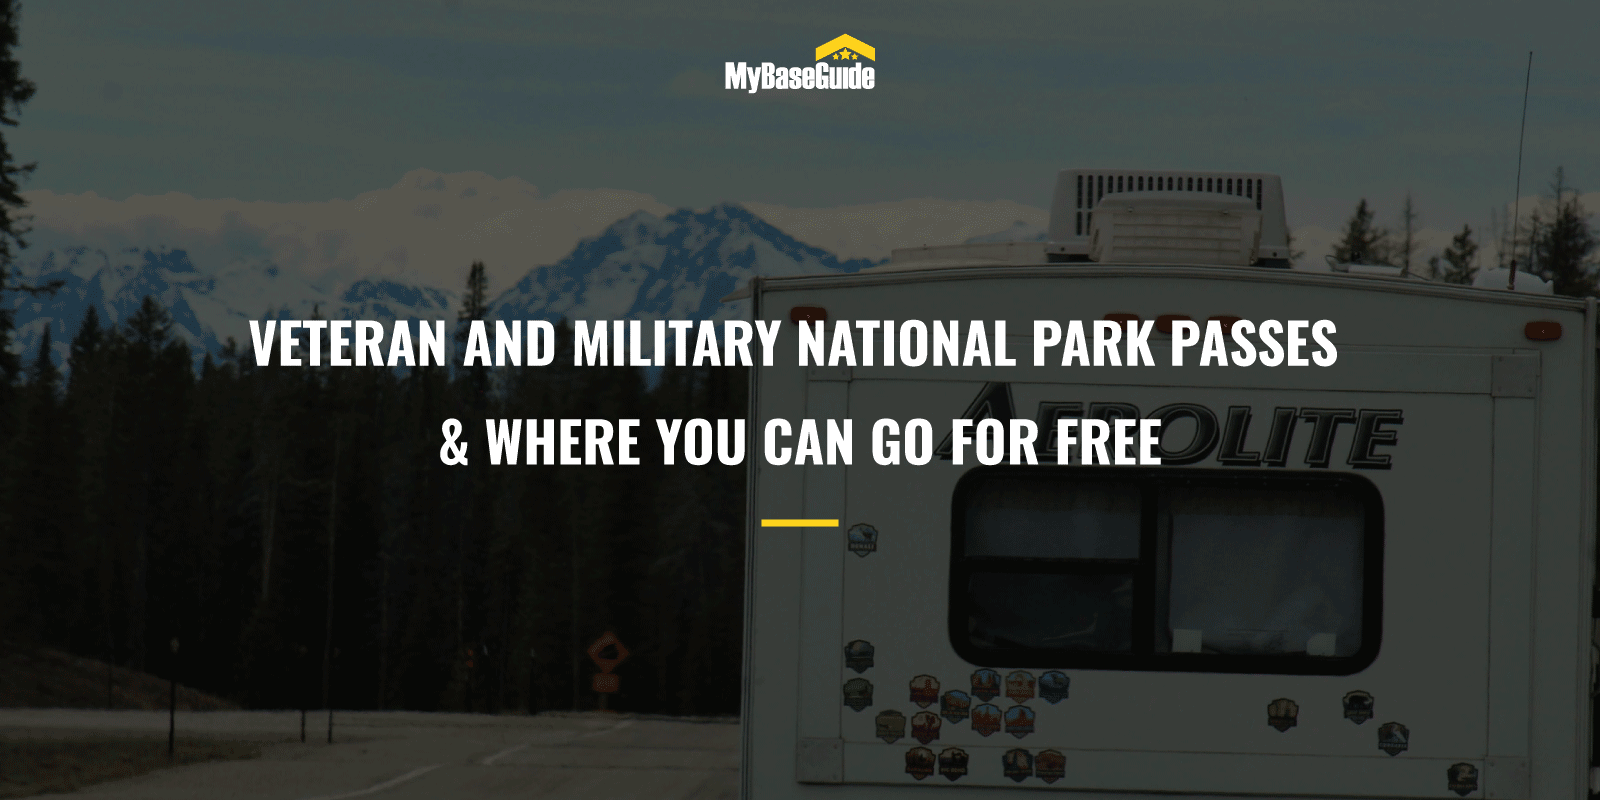 Veteran and Military National Park Passes & Where You Can Go for Free